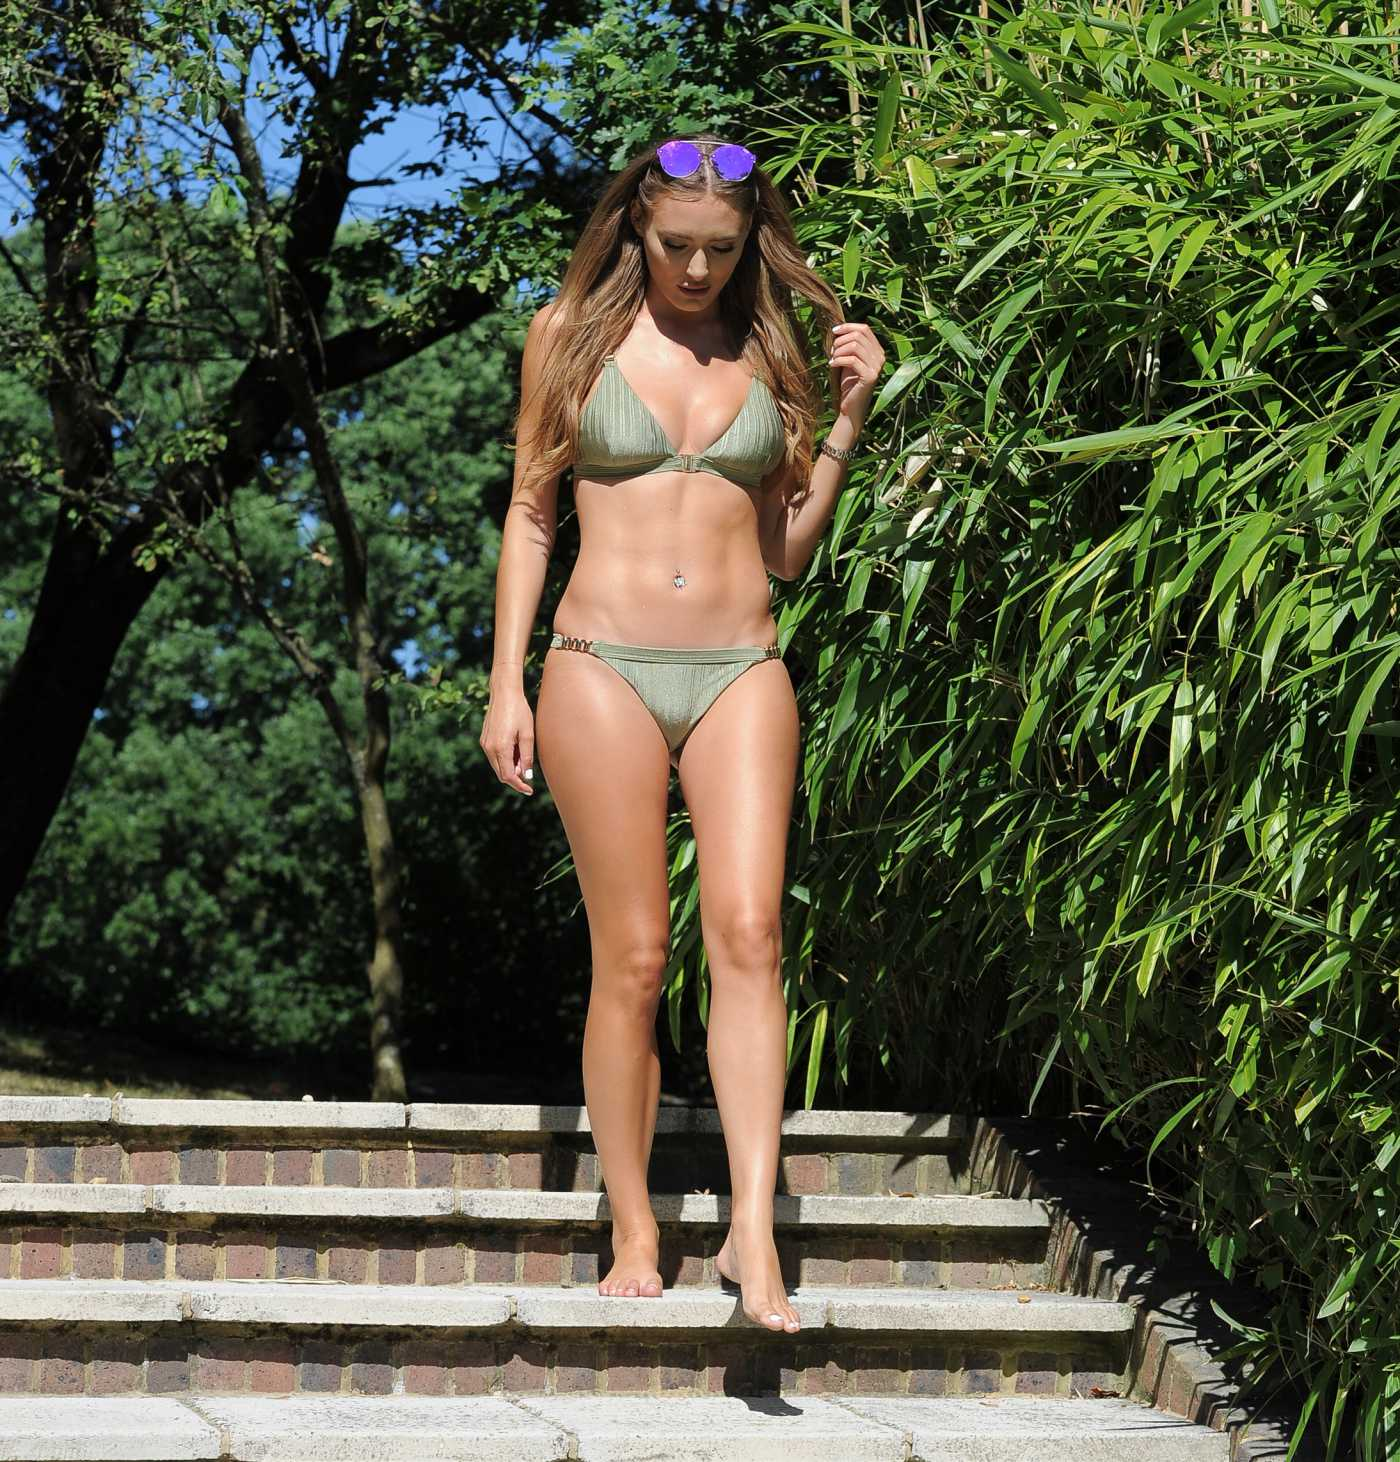 Georgie Clarke in a Green Bikini By the Pool at Her Parents House in Hasslemere 04/26/2020